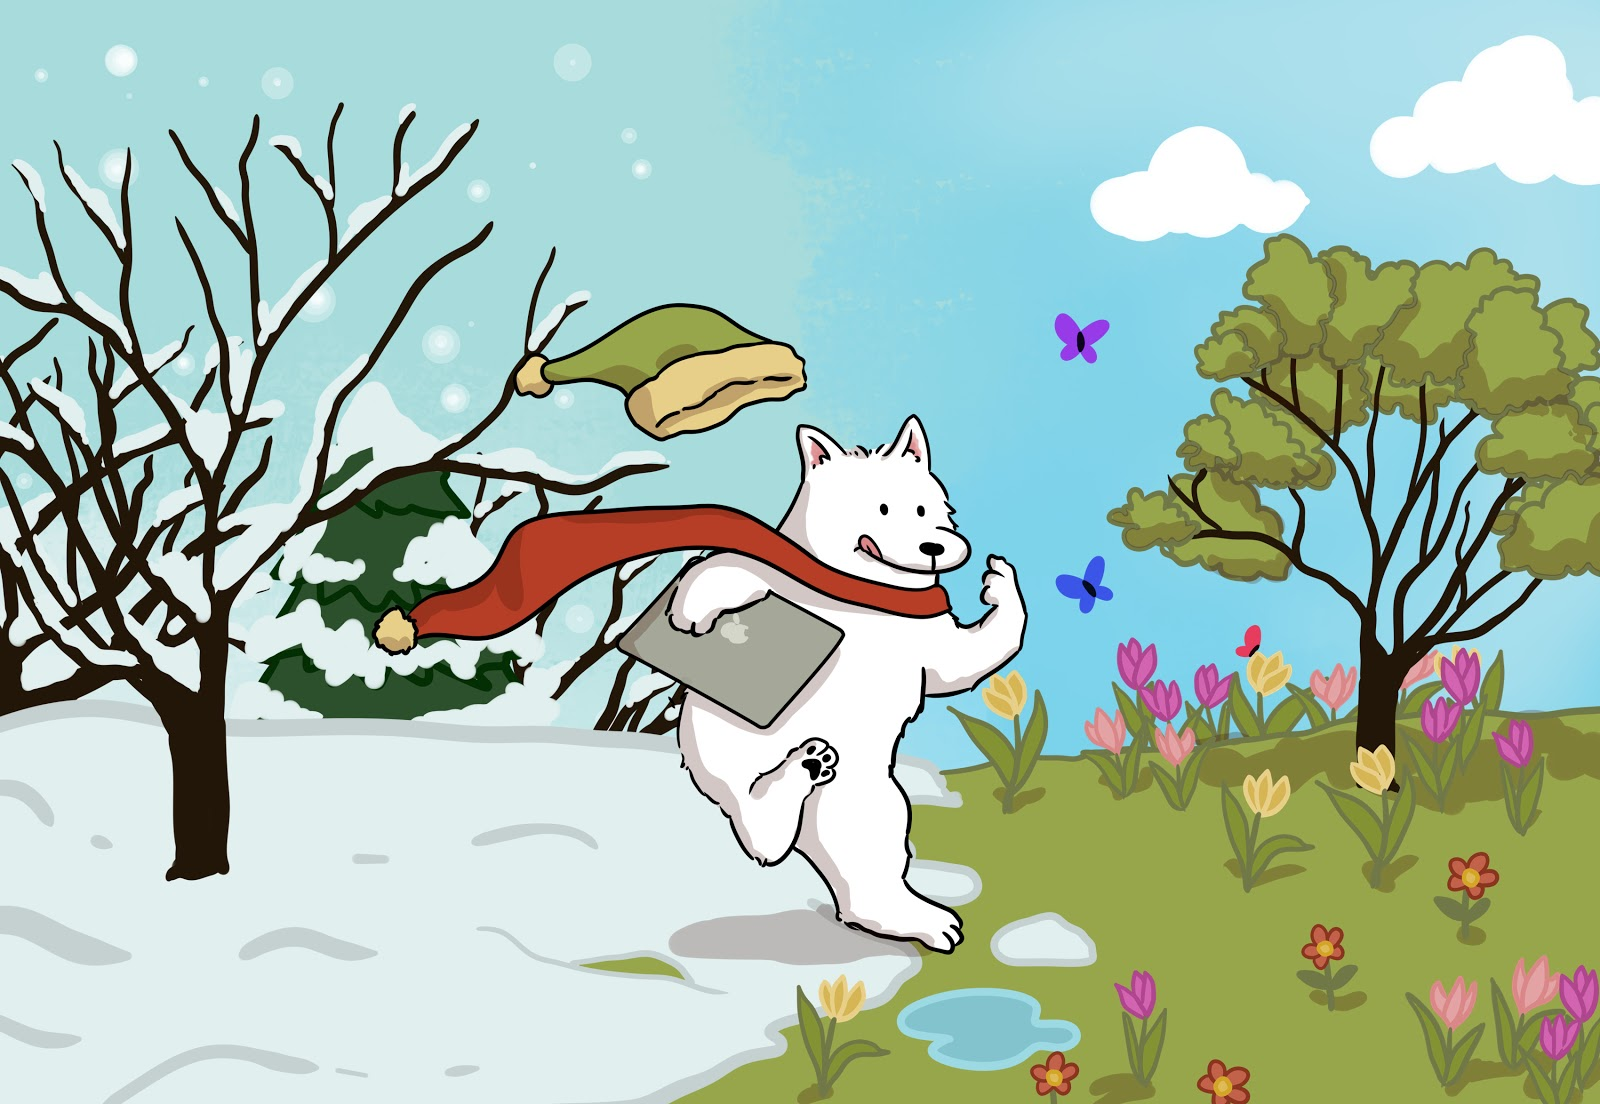 White dog running from a winter scene with snow and bare trees into a spring scene with green grass, flowers, and butterflies.